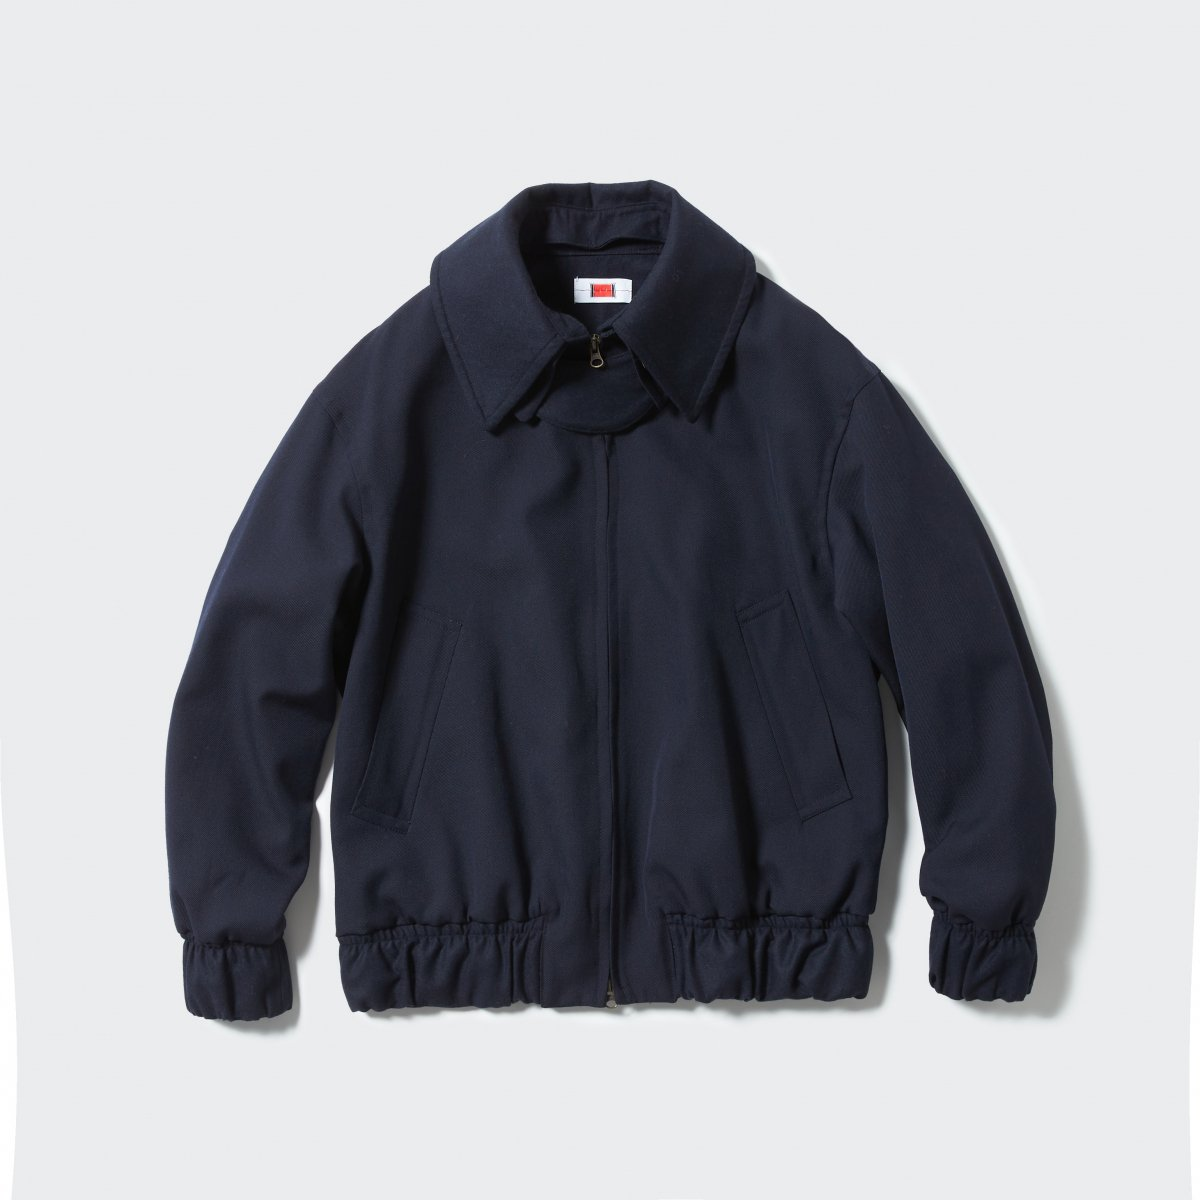 <img class='new_mark_img1' src='https://img.shop-pro.jp/img/new/icons5.gif' style='border:none;display:inline;margin:0px;padding:0px;width:auto;' />【2021AW】RPC FINE WOOL BLOUSON | BLACK